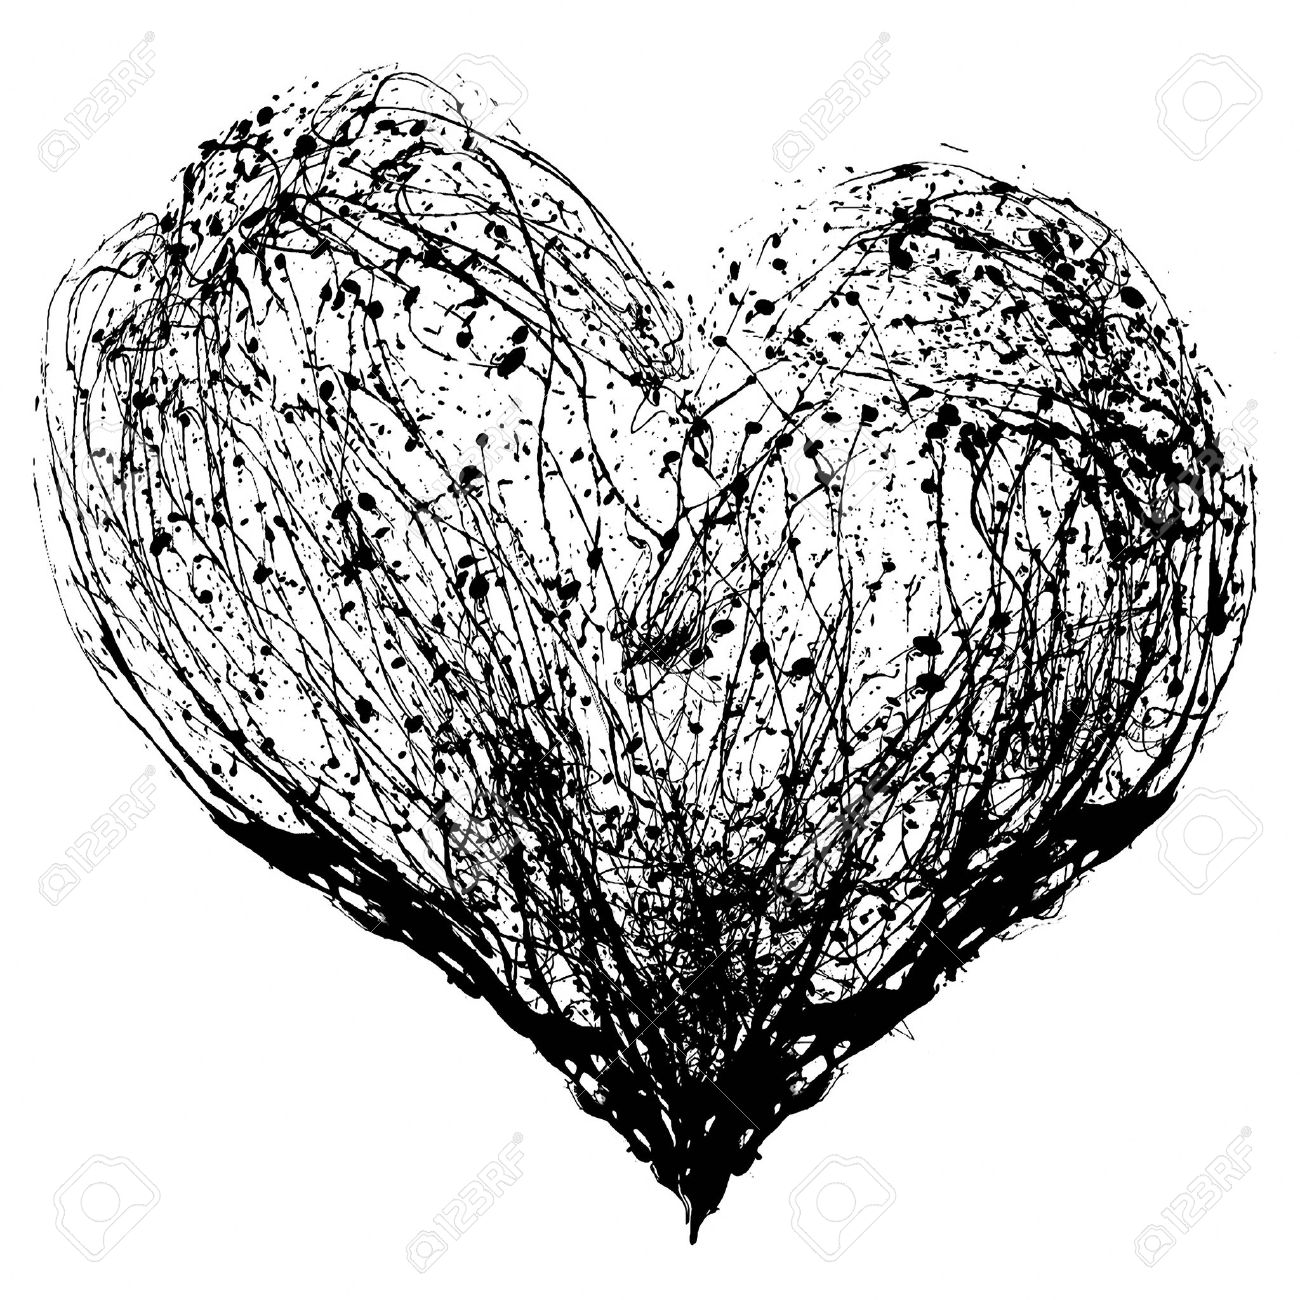 Black And White Heart Drawing